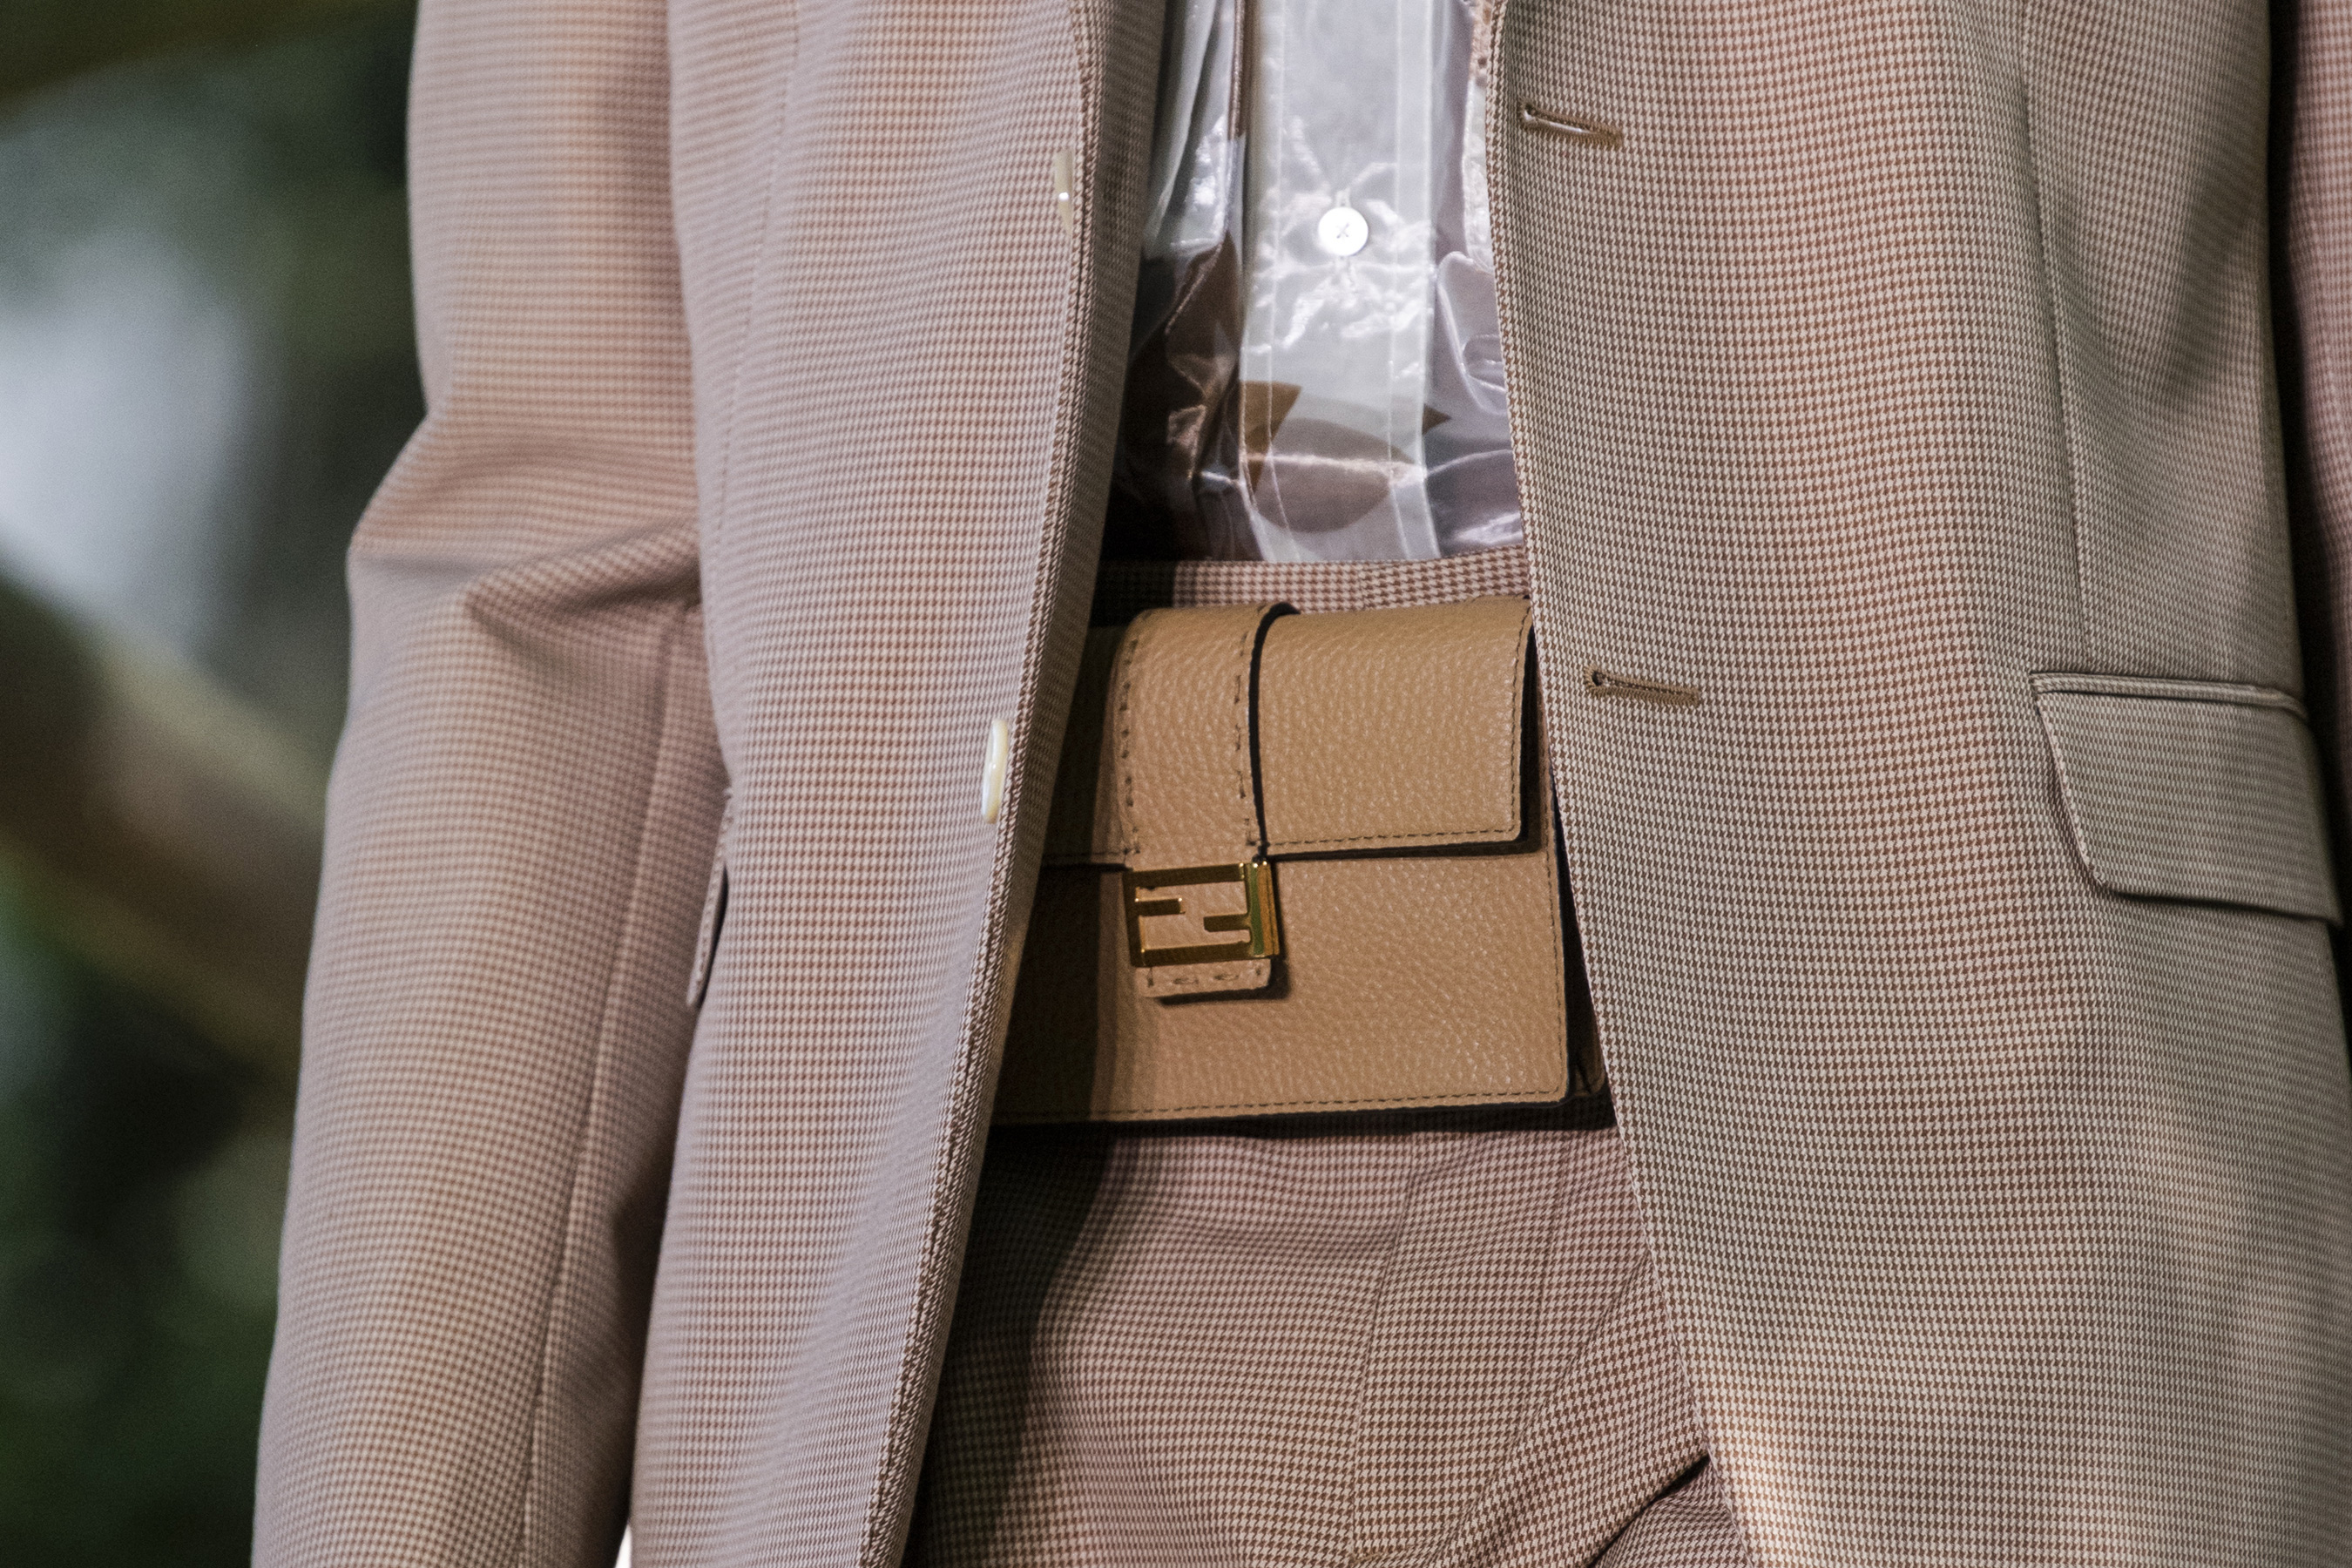 Fendi Spring 2020 Men's Fashion Show Details